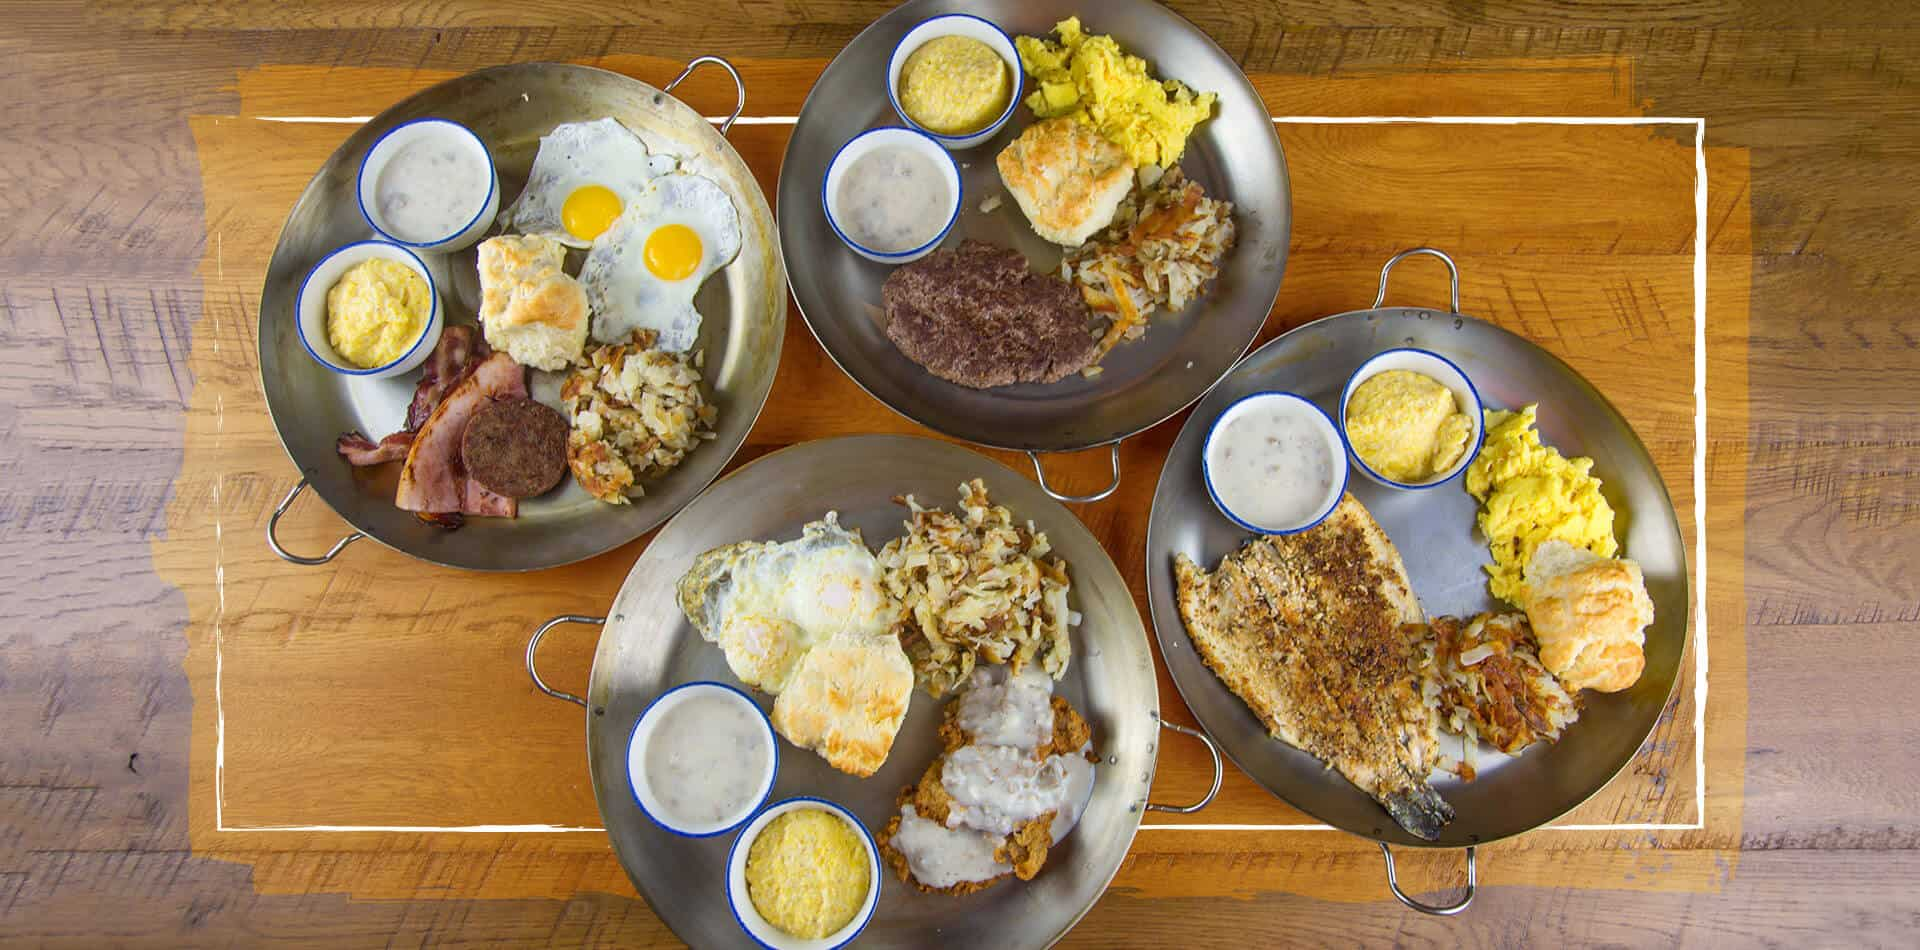 Breakfast Skillets at Five Oaks Farm Kitchen